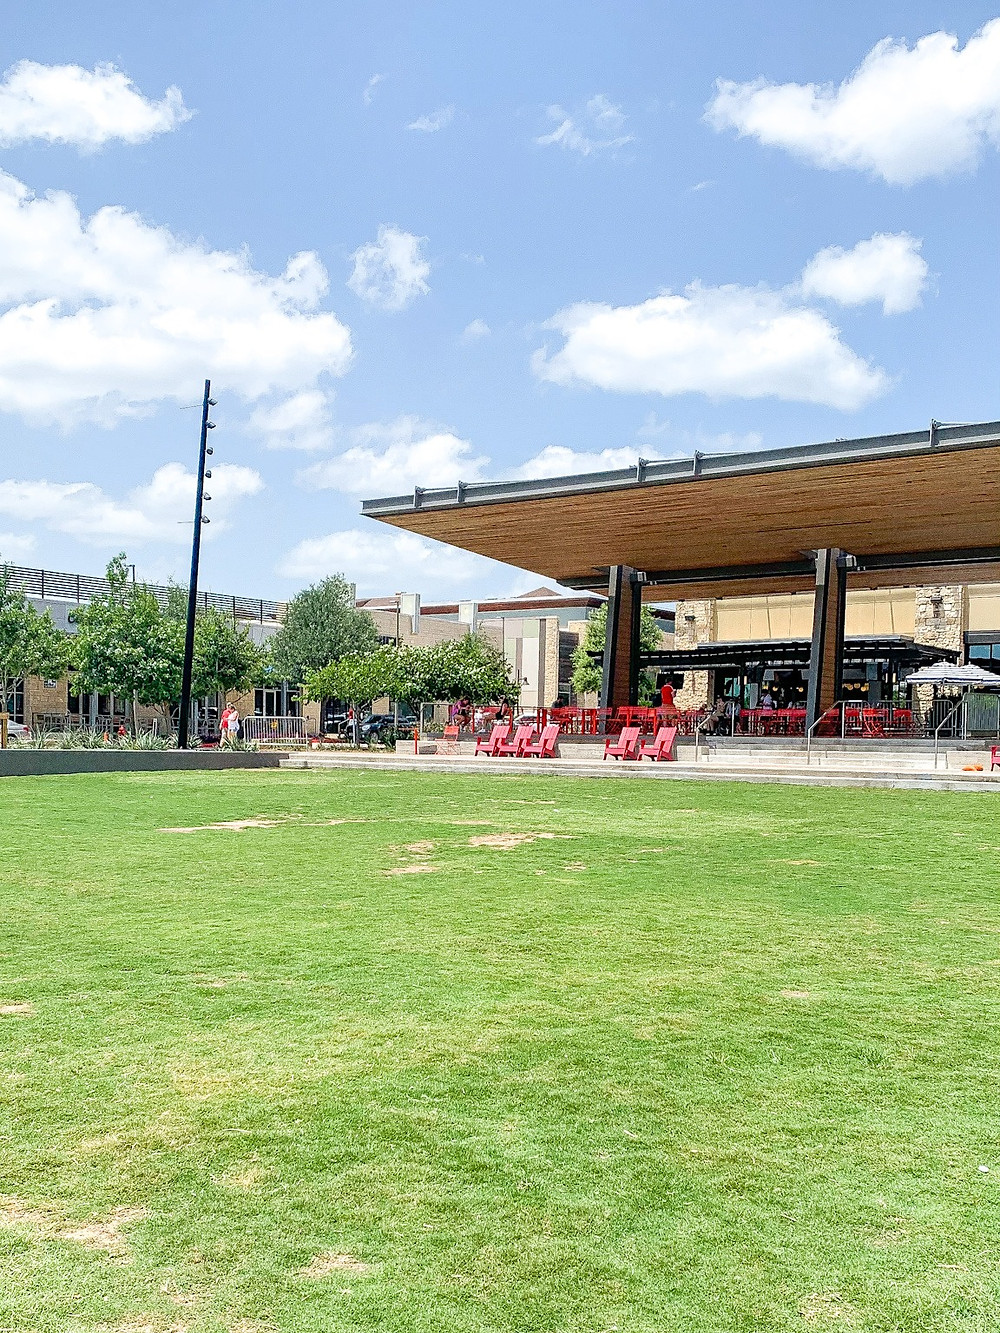 Hill Country Galleria's main event lawn with patio style seating and covered pavilion.